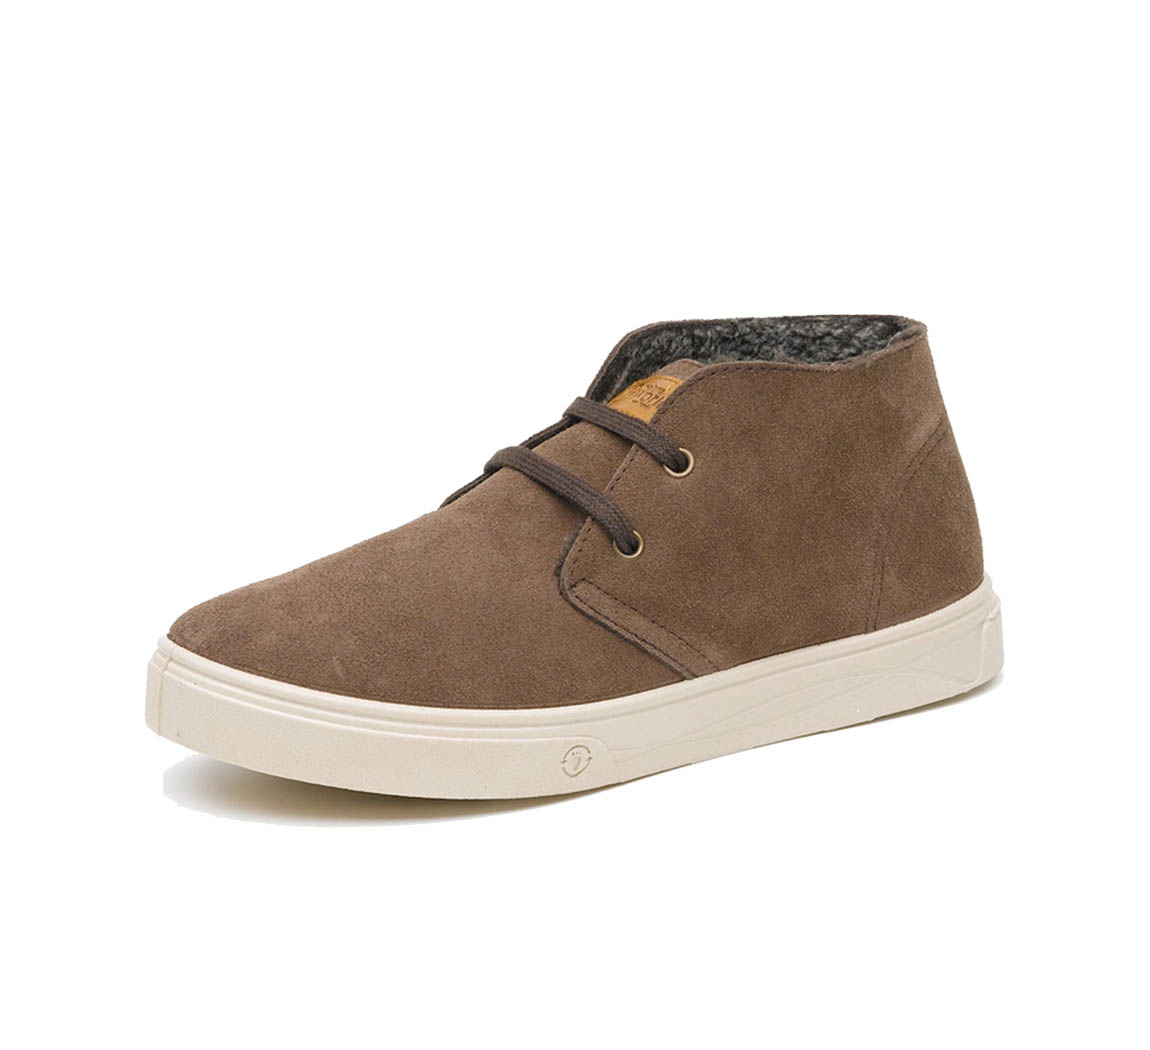 Chaussure homme Safari Suede